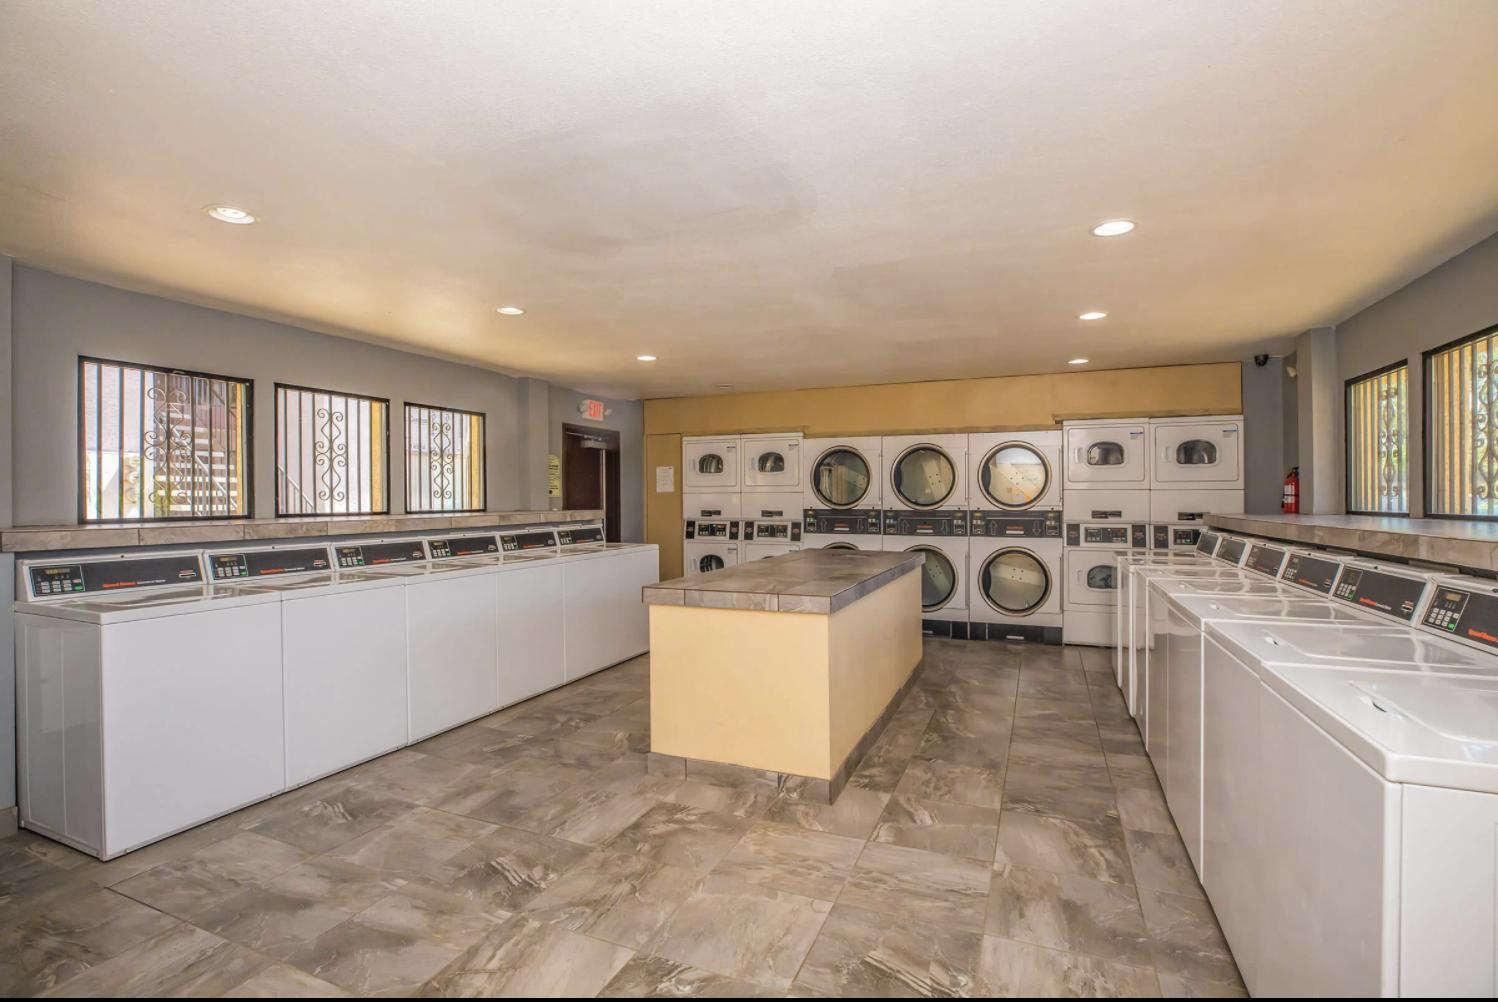 5535 W McDowell Road #Dahlia Upgraded, Phoenix, AZ - $770 USD/ month